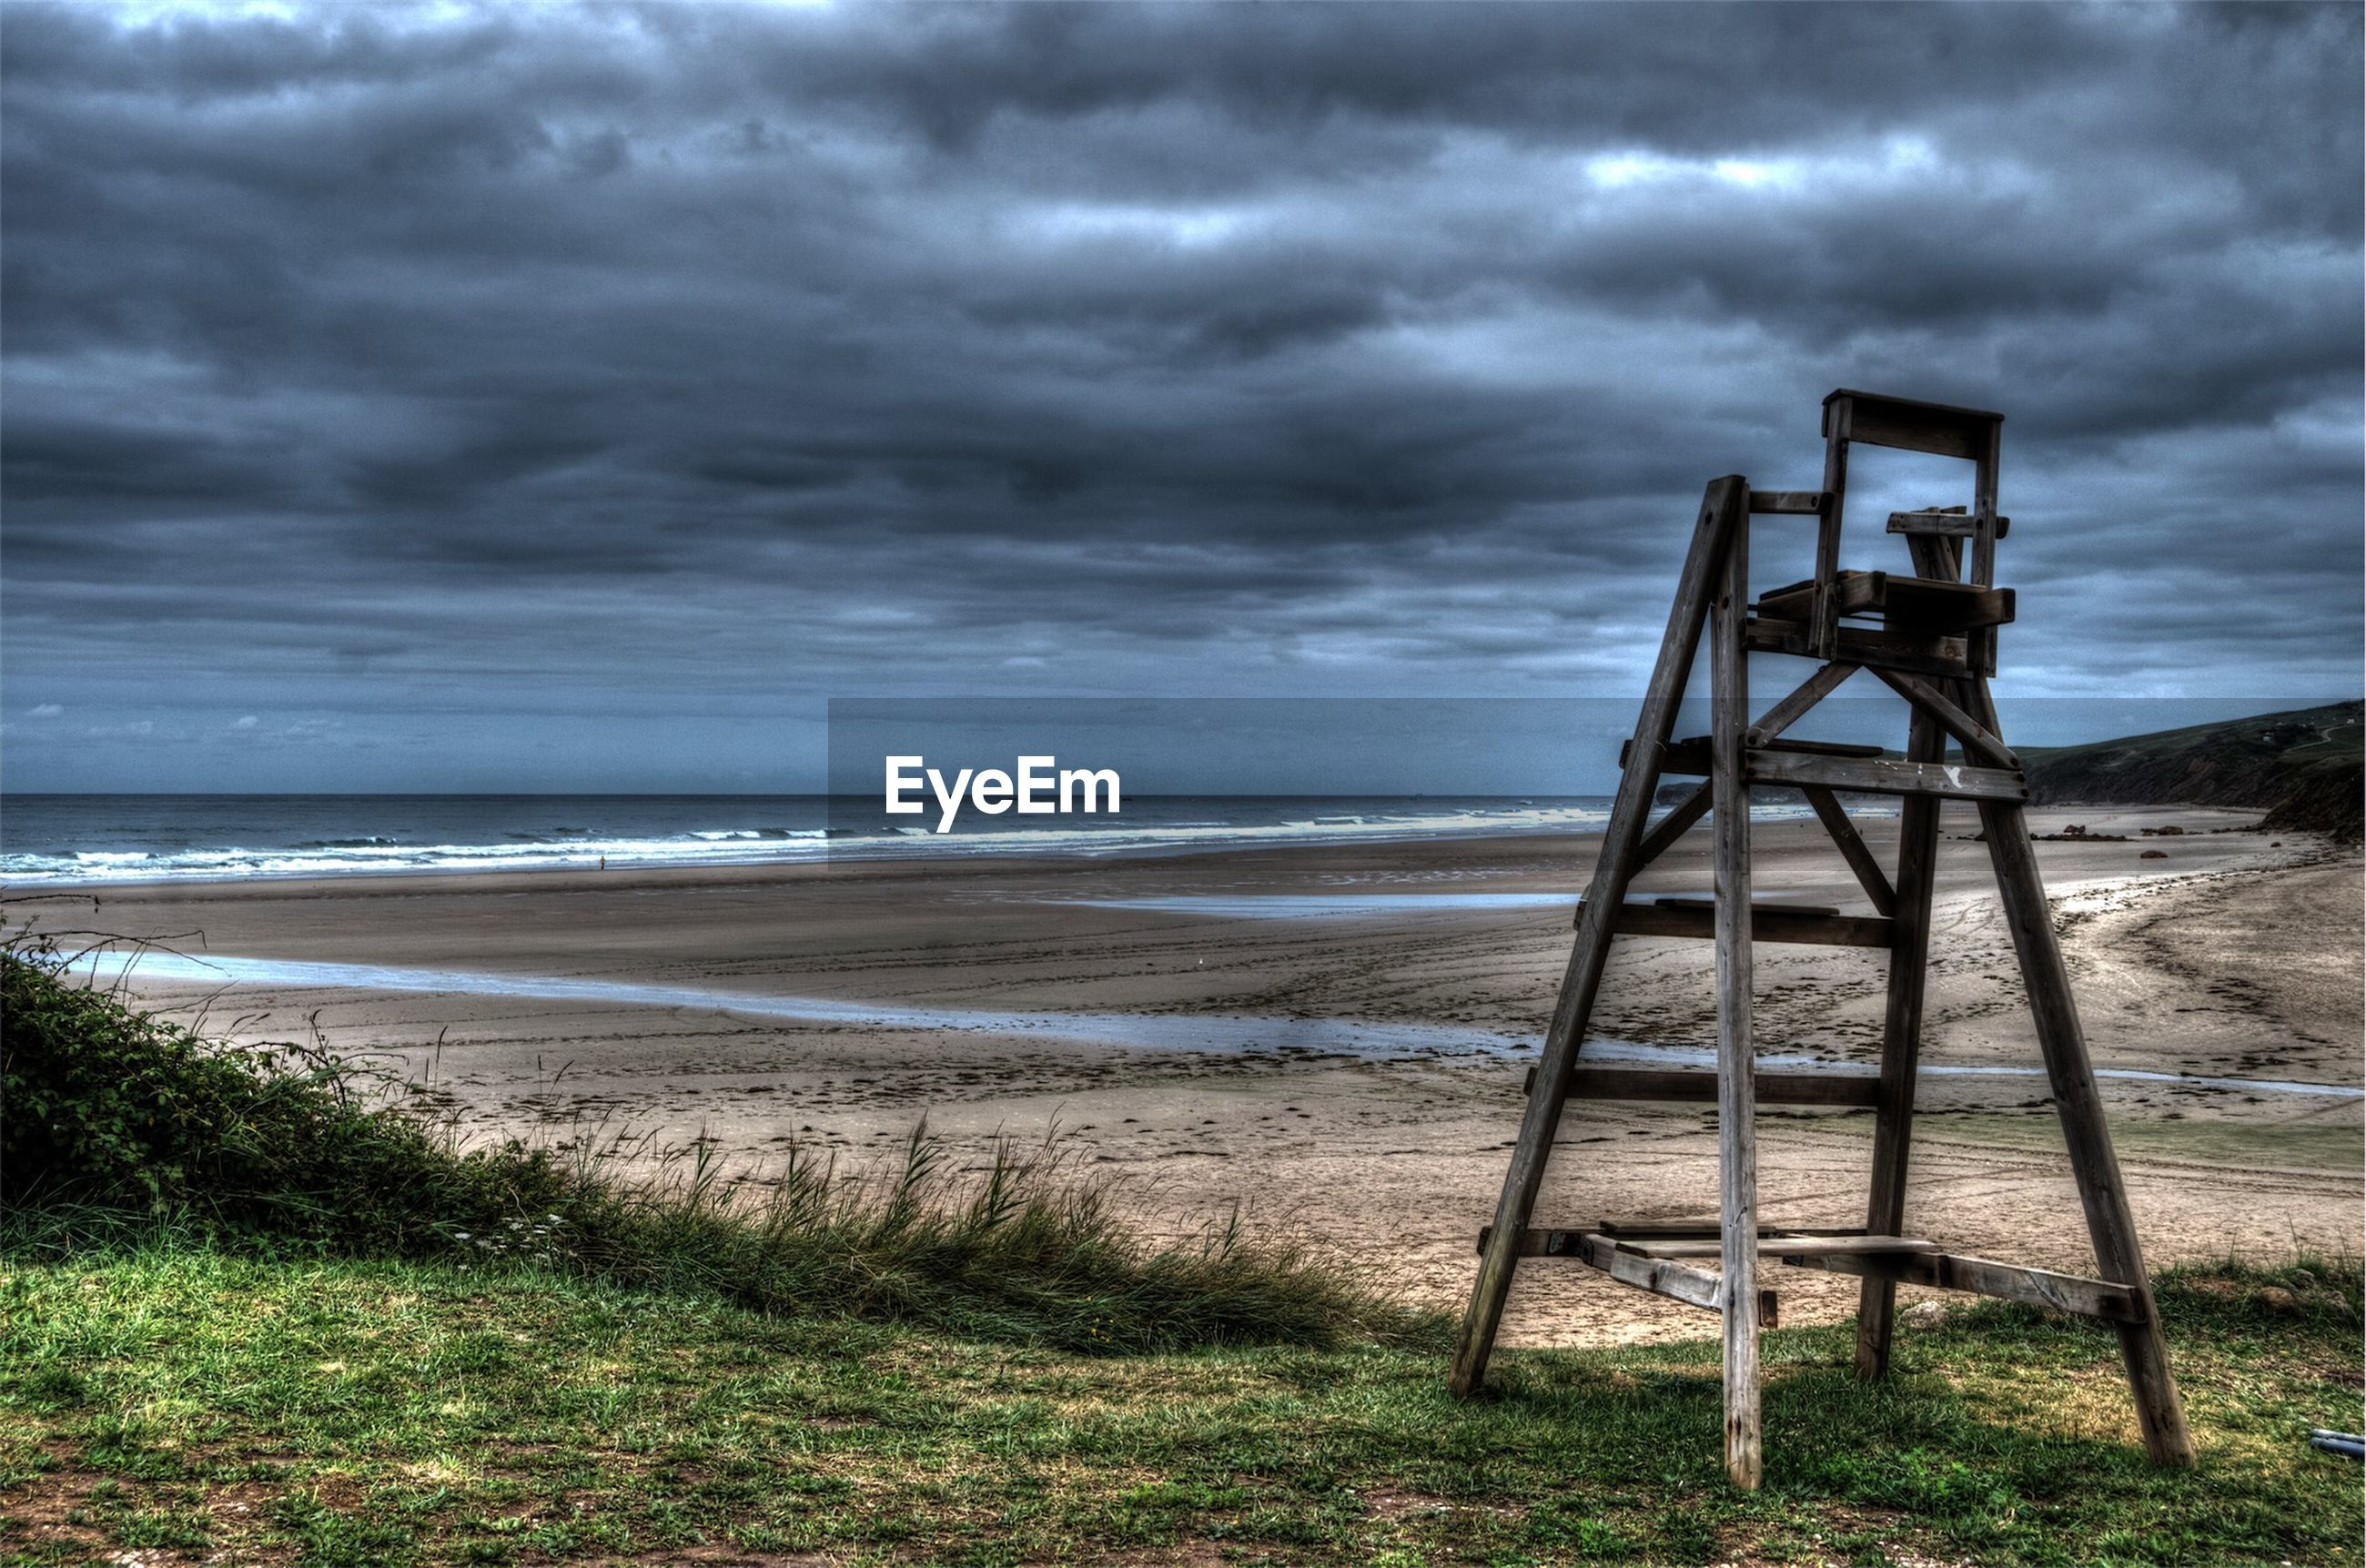 Rescue tower at beach against cloudy sky